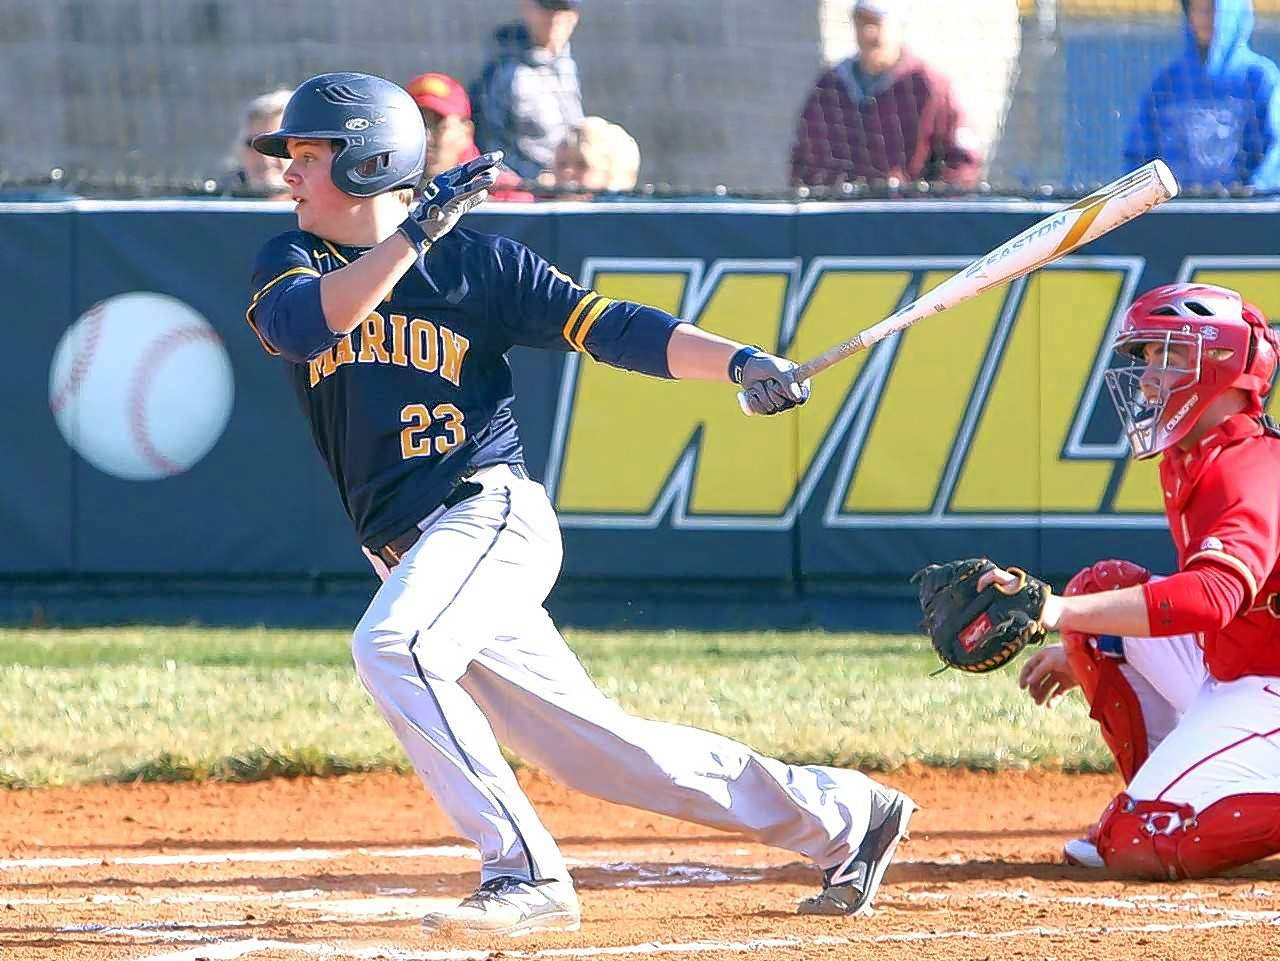 Jake Welch of the Wildcats rips a two-run single in the first inning.